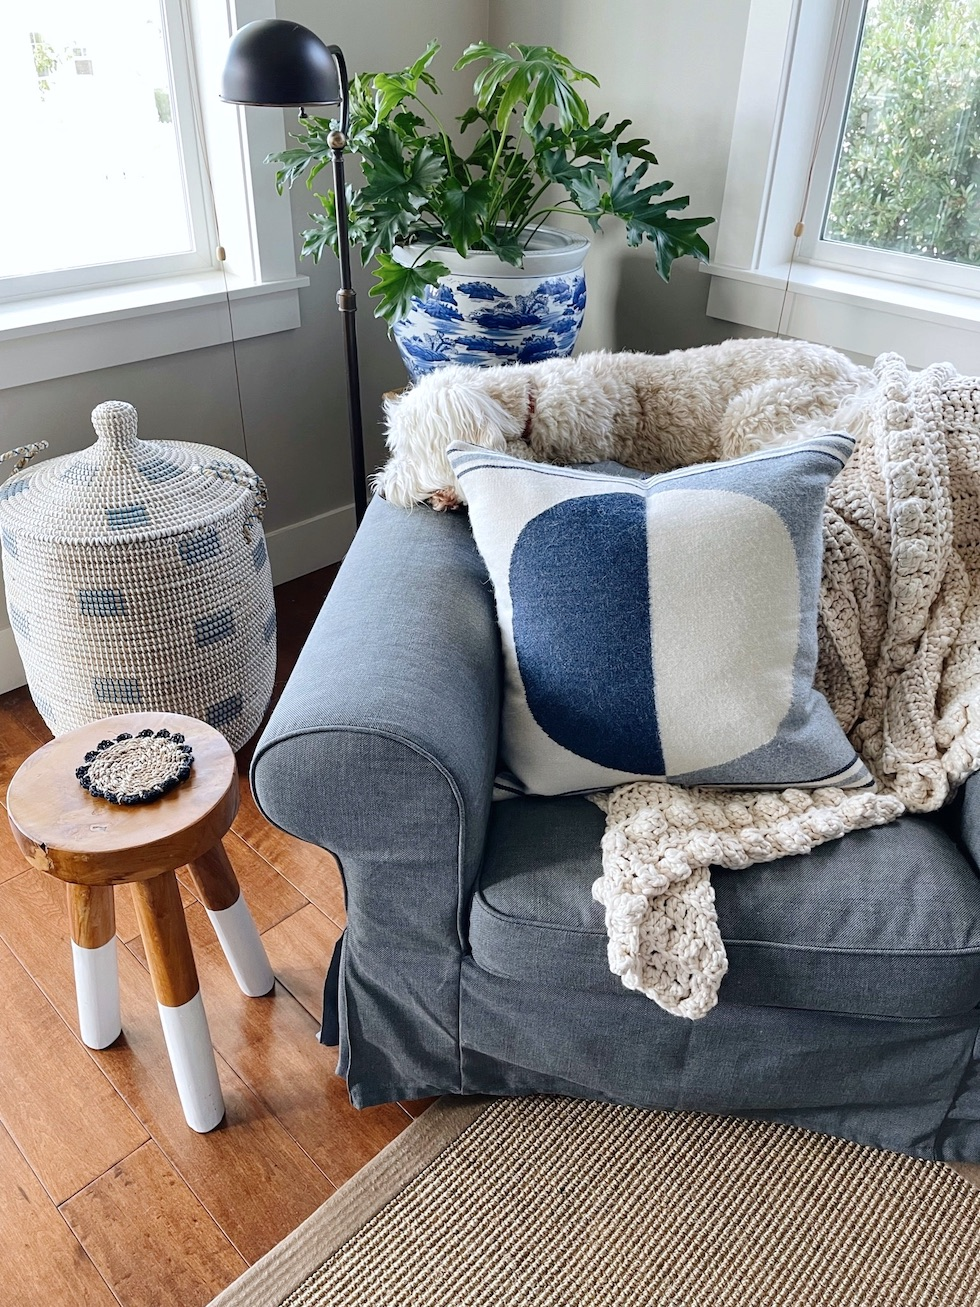 Quick Ship Design Staples from Serena & Lily: Making This House Our Home